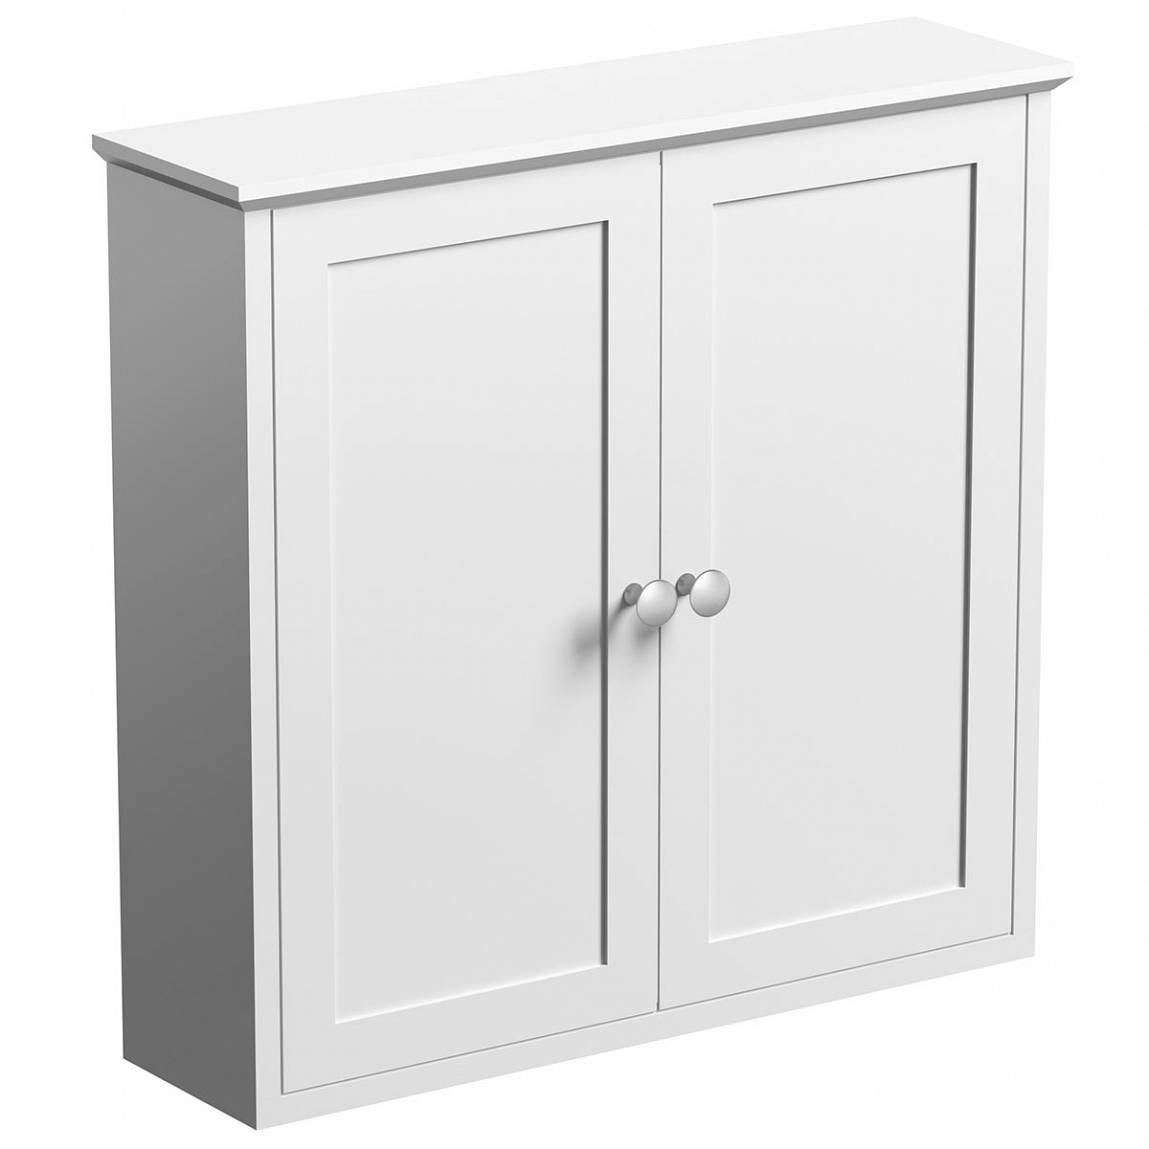 Oops 404 Wall Mounted Cabinet Wall Mounted Bathroom Cabinets White Bathroom Cabinets